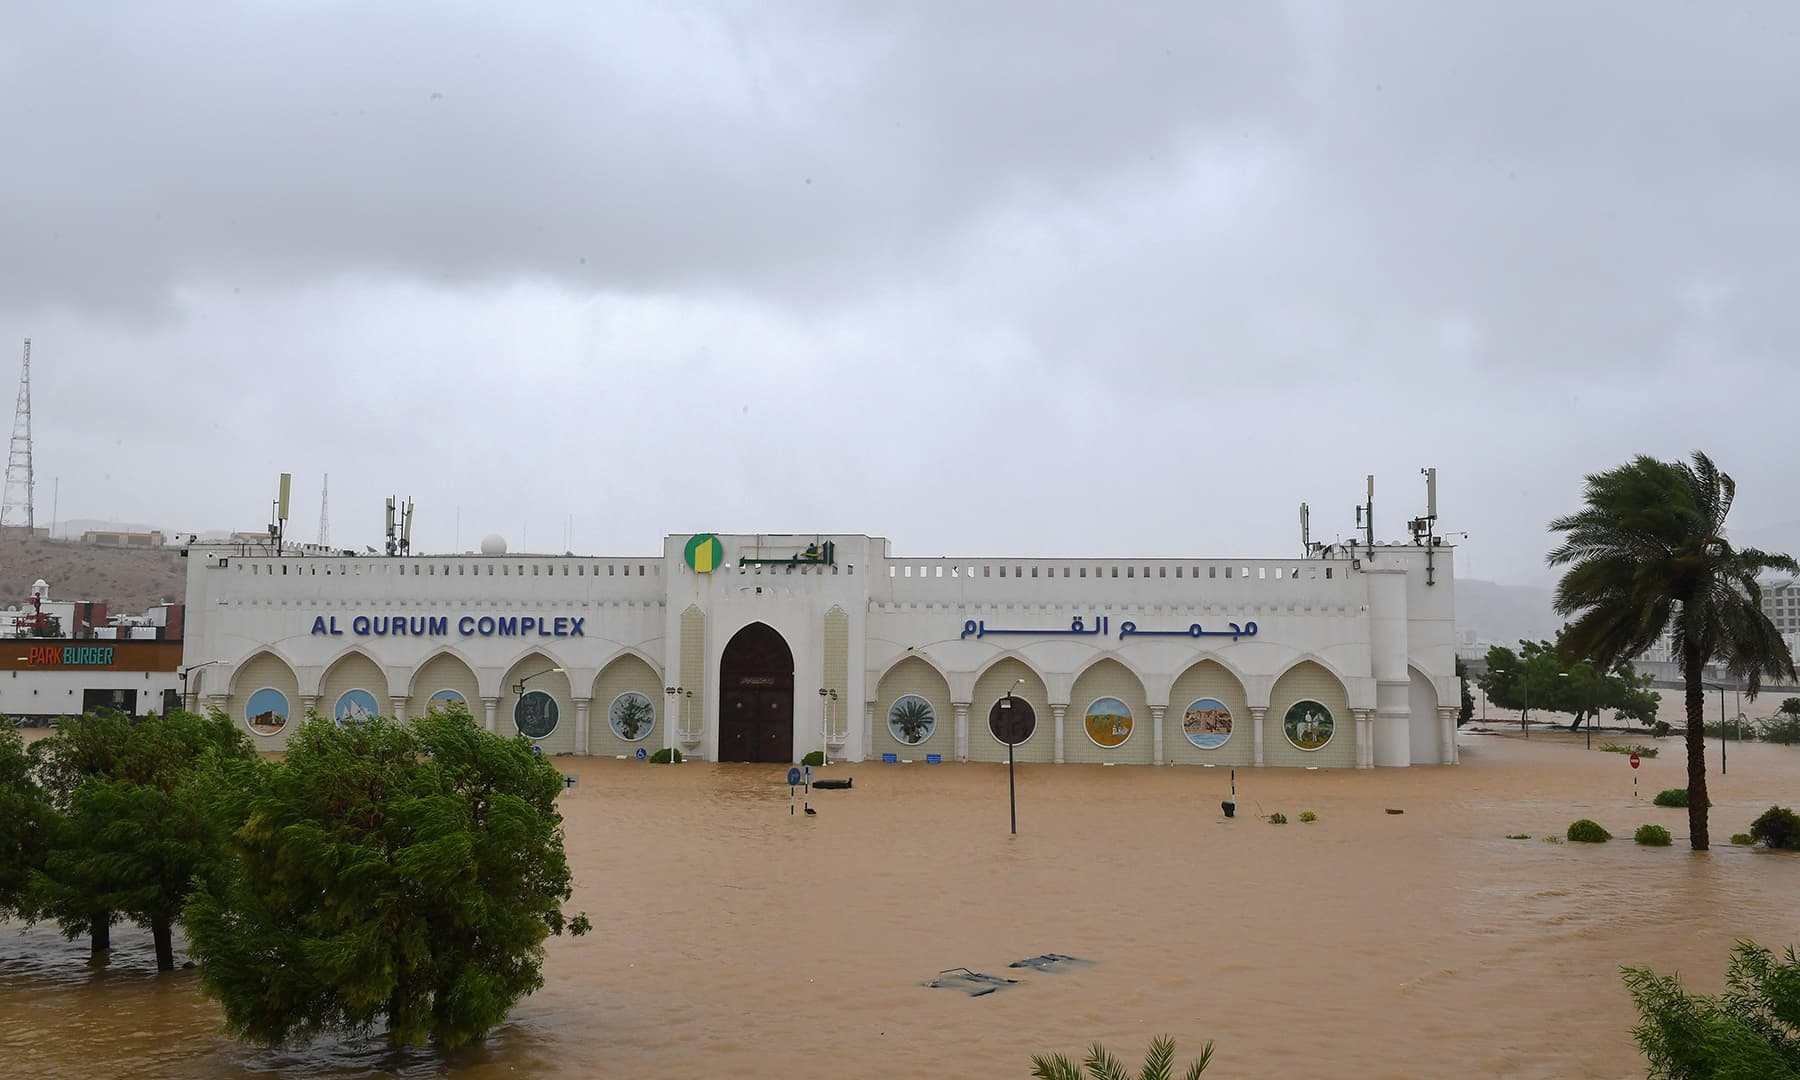 Parking of Al Qurum Complex is flooded as Cyclone Shaheen makes landfall in Muscat, Oman, October 3. — Oman News Agency/Handout via Reuters